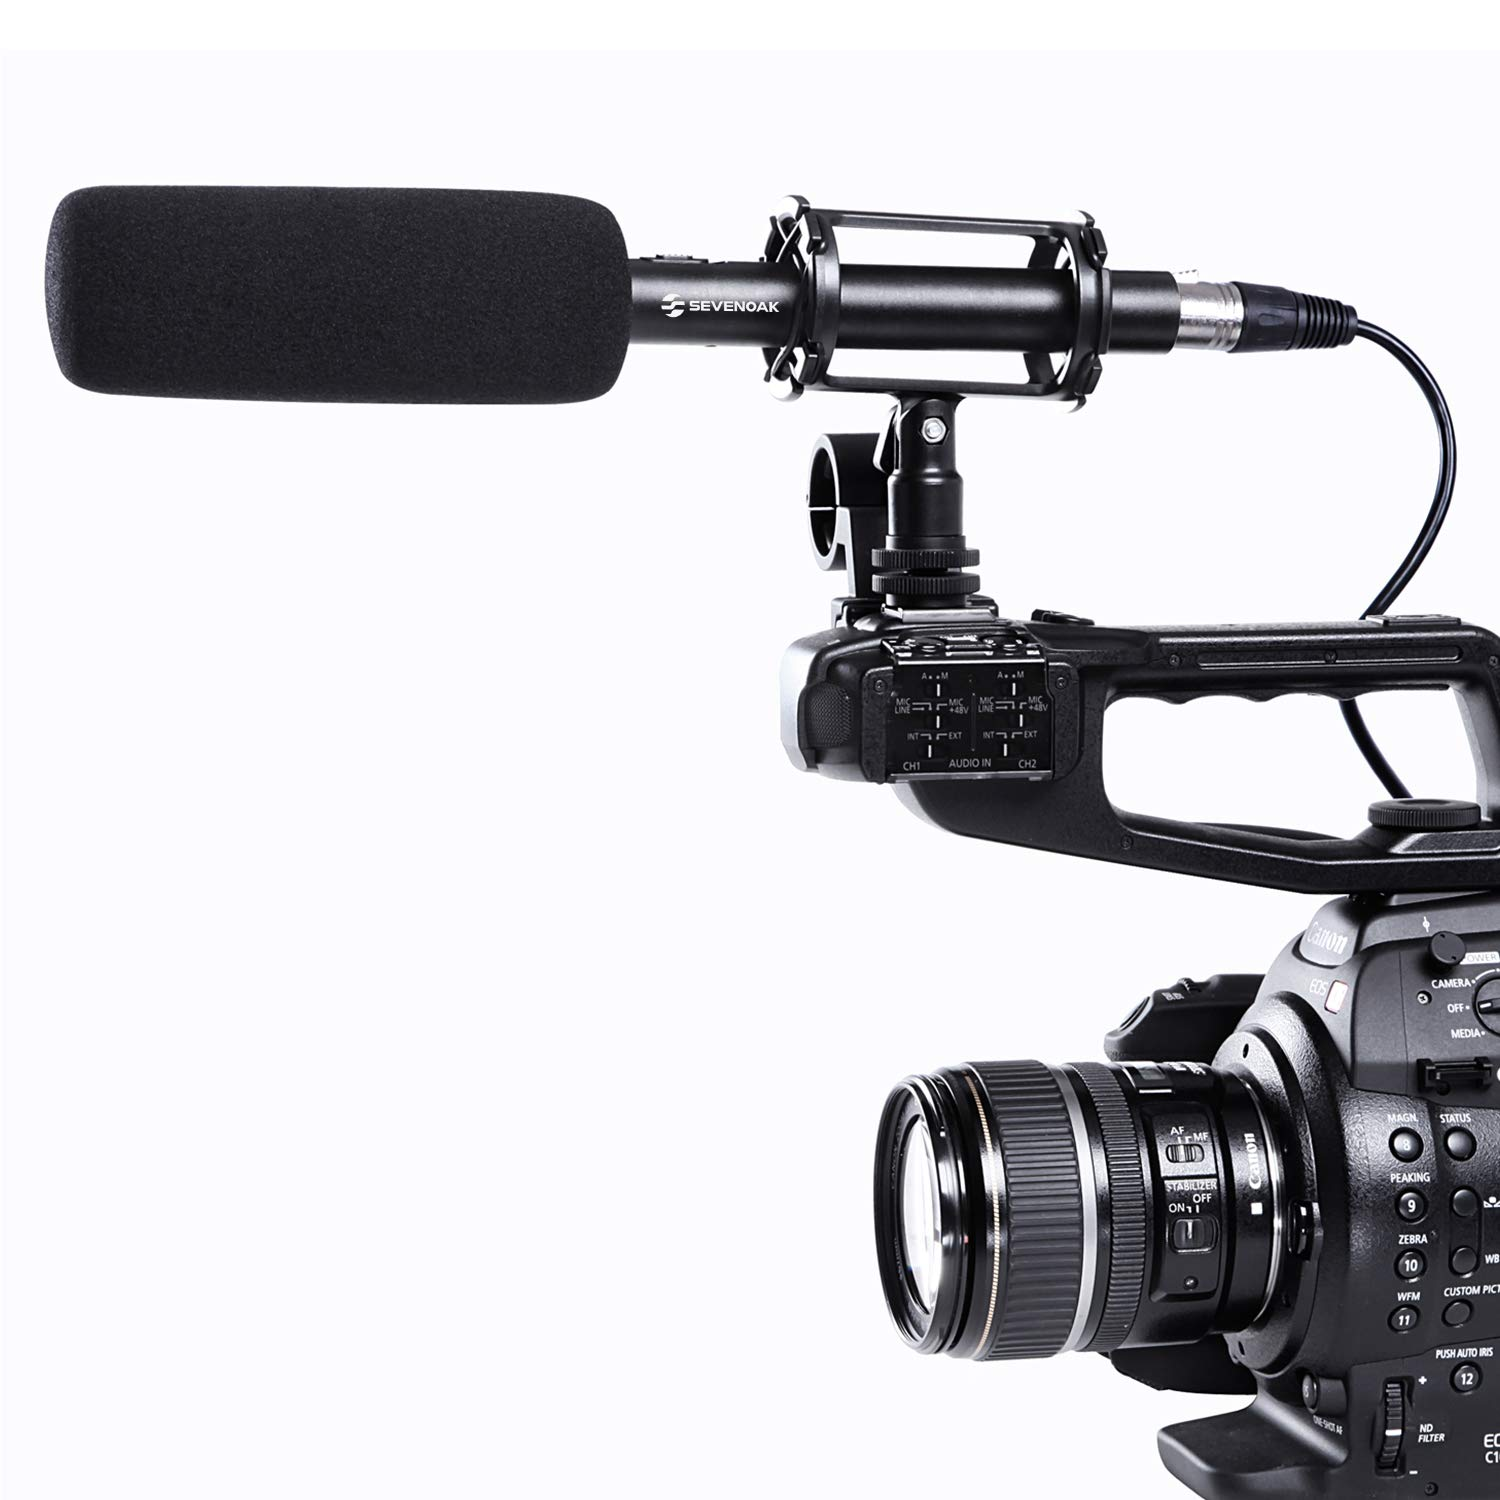 Sevenoak BY-PVM1000 Pro Broadcast-Quality Interview Shotgun Microphone with Foam Windscreen & Shock Mount 3 Pin XLR Output for Canon 6D Nikon D800 Sony Panasonic Camcorders by Sevenoak